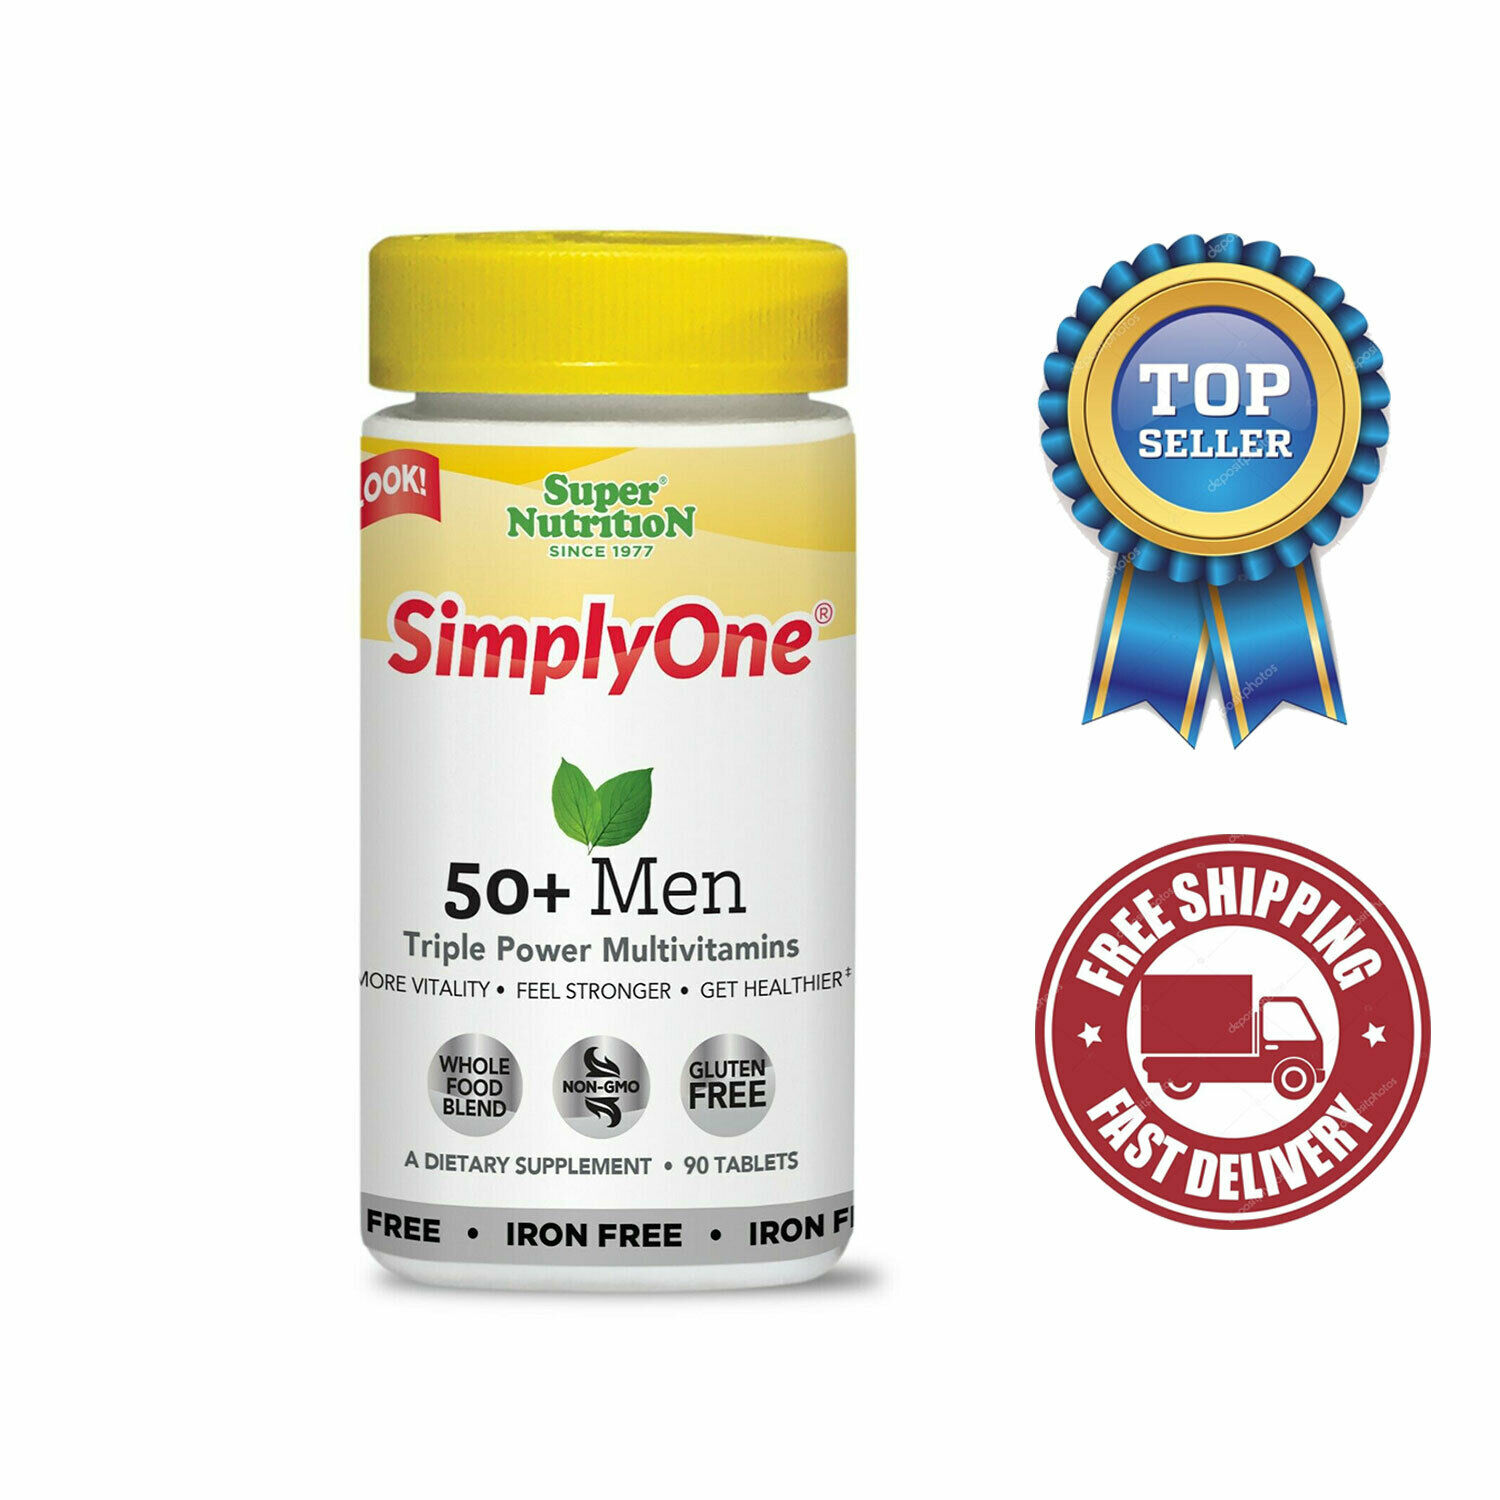 Simply One 50+ Men - I/F 90 Tablets by Super Nutrition